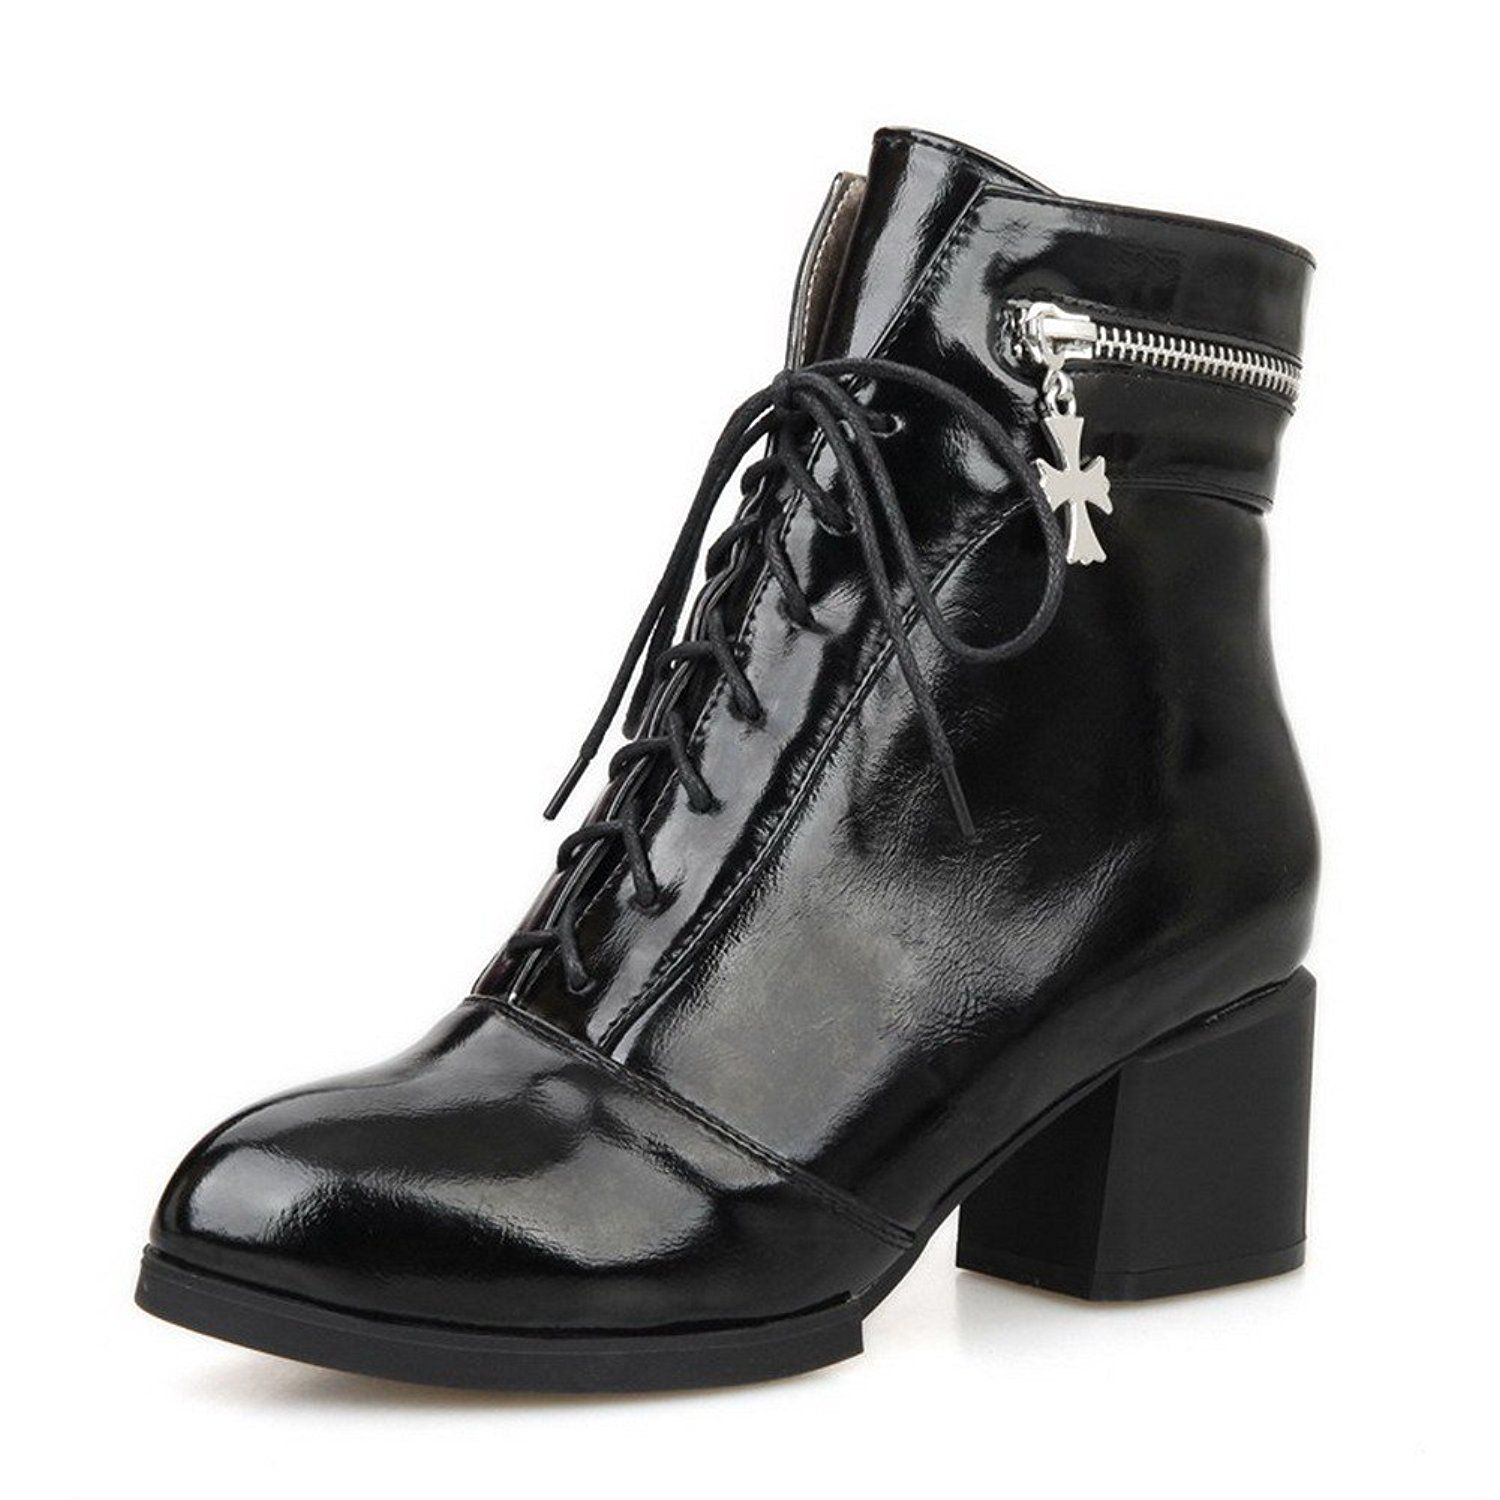 Maymeenth Women's PU Blend Materials Round Closed Toe Low-top Kitten-heels Boots *** Want to know more, click on the image.